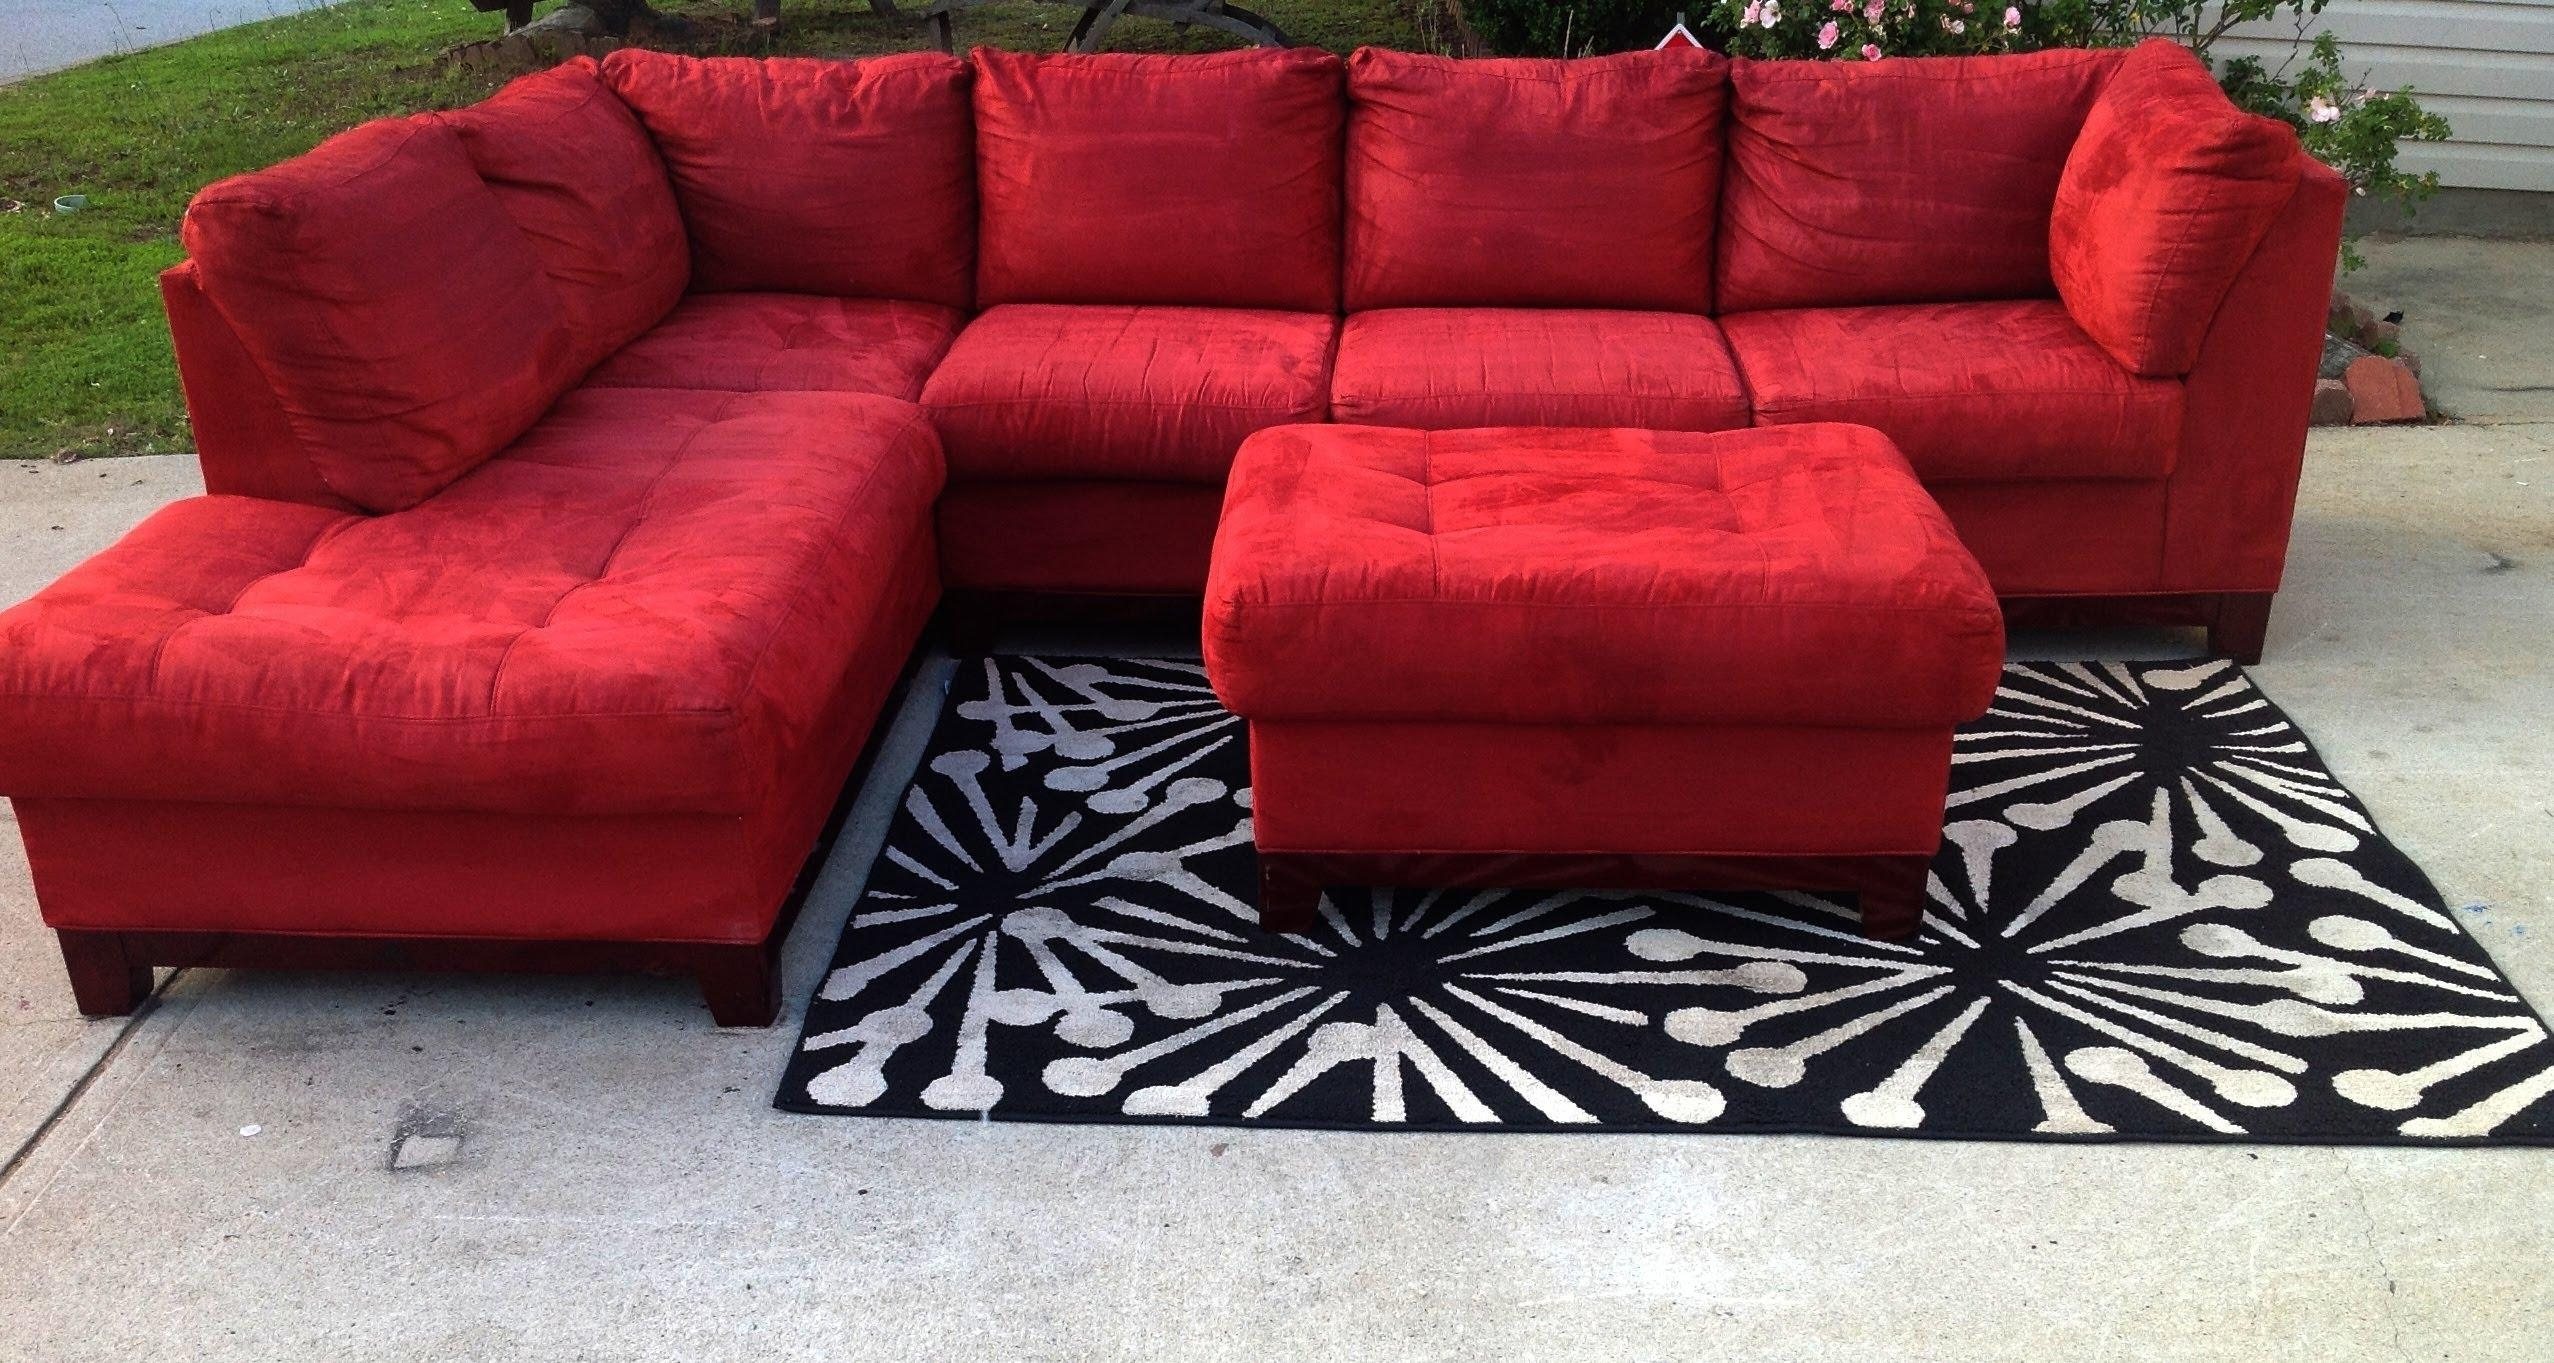 Cindy Crawford Furniture For Sofa — Liberty Interior : Decorate With Regard To Cindy Crawford Sectional Sofas (Image 2 of 20)